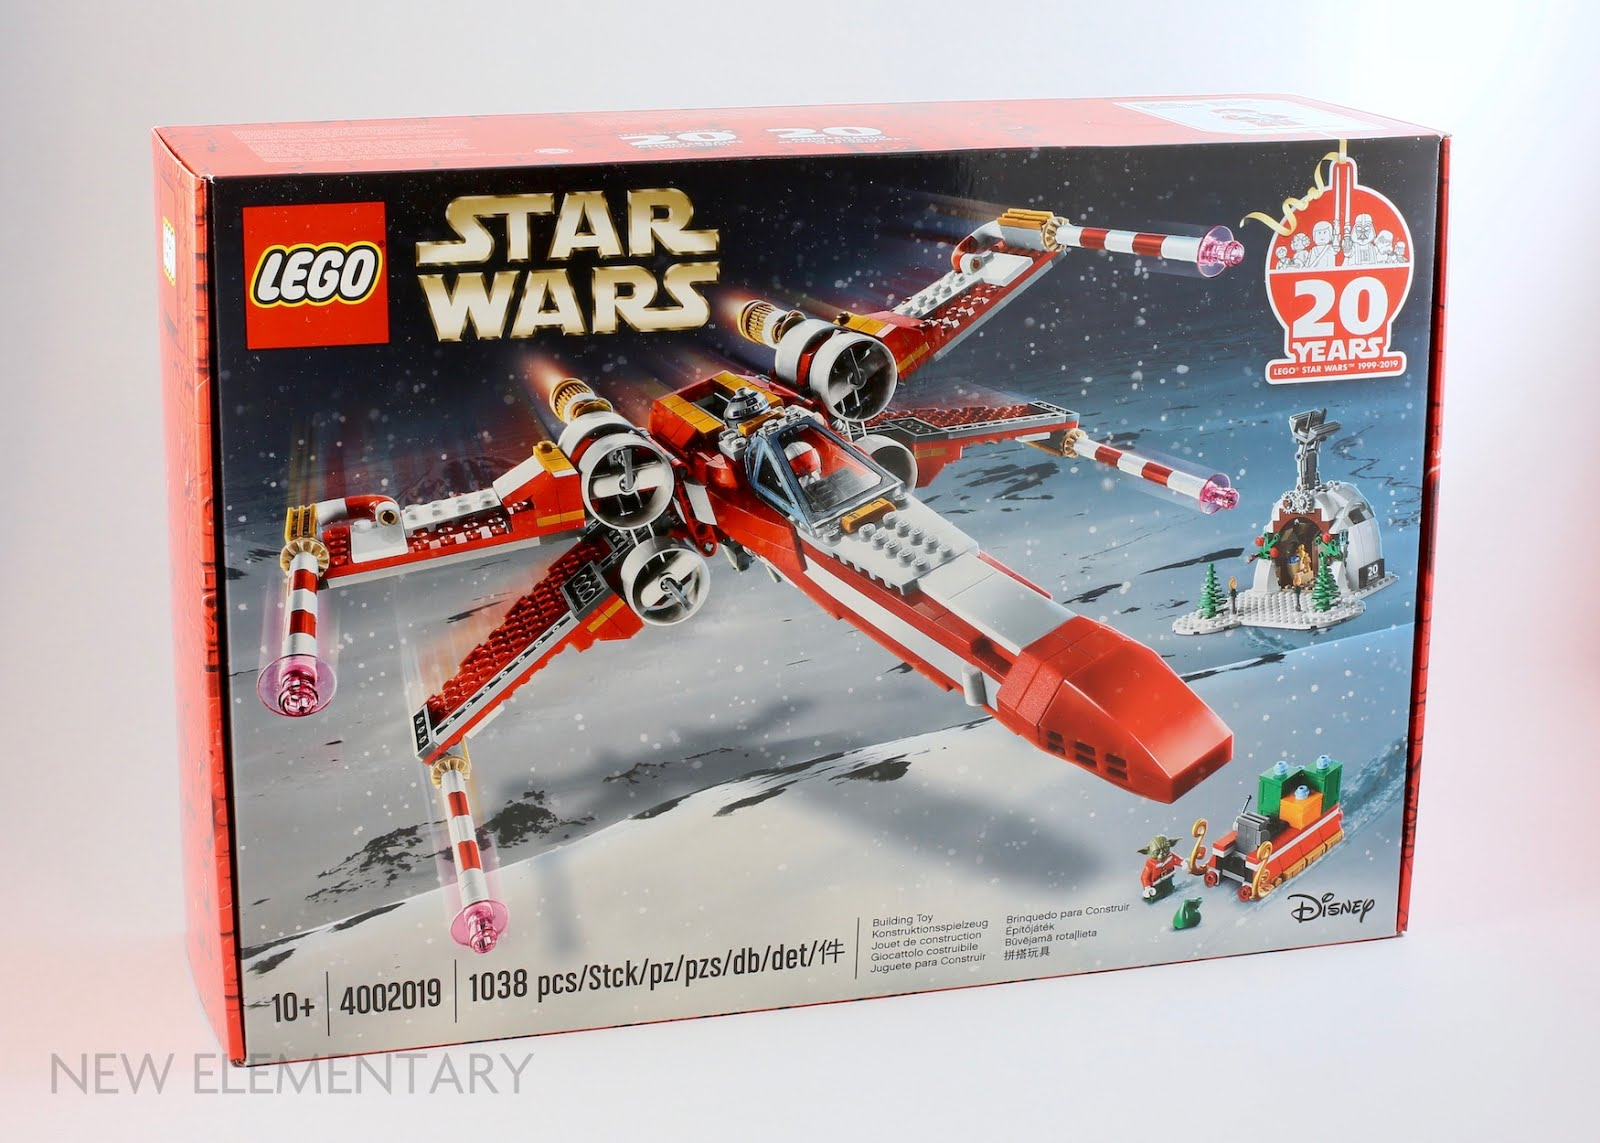 LEGO® Employee Gift 4002019 Christmas X-Wing: Build Your Own | New Elementary, a LEGO® blog of parts